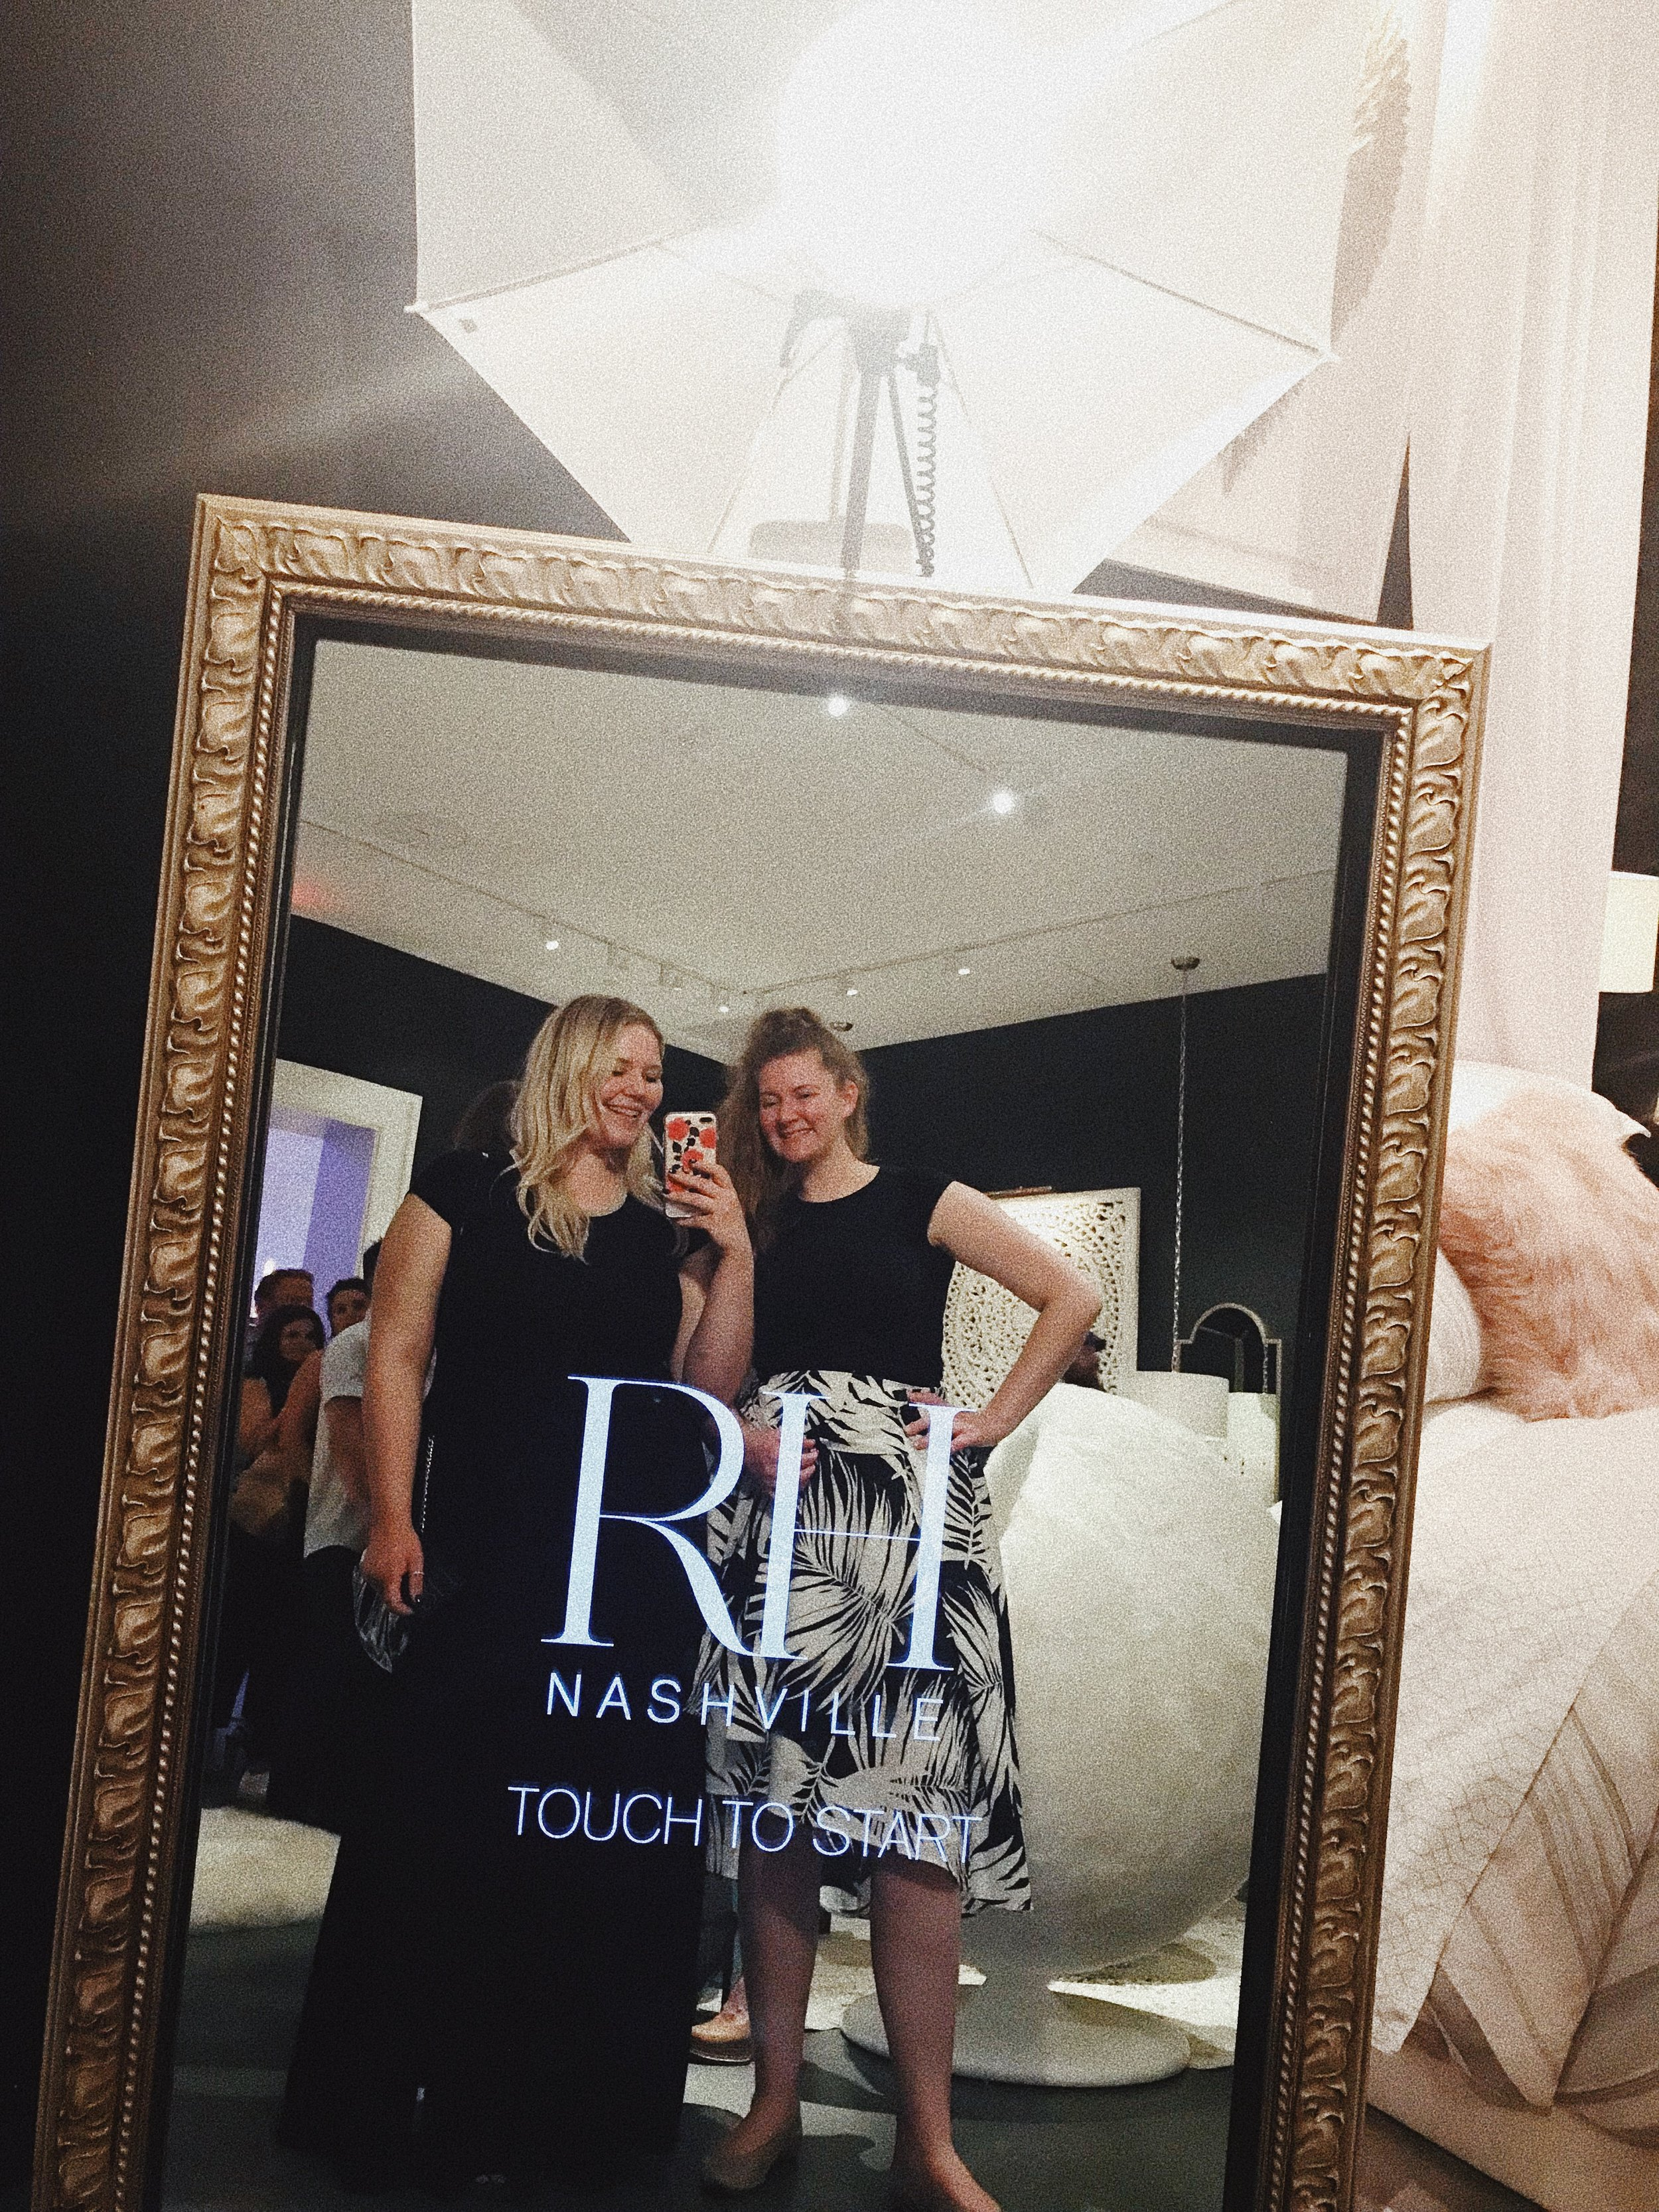 My sister, Kourtney, and I attended the event and mingled with Nashville's creatives, entrepreneurs, and industry professionals. The new RH space is SO beautiful and feels more luxurious than other Nashville hotspots. The four-story building offered a signature drink on each floor, a candy bar, and a Photo Booth. Everywhere you turned, there was something magical to see!